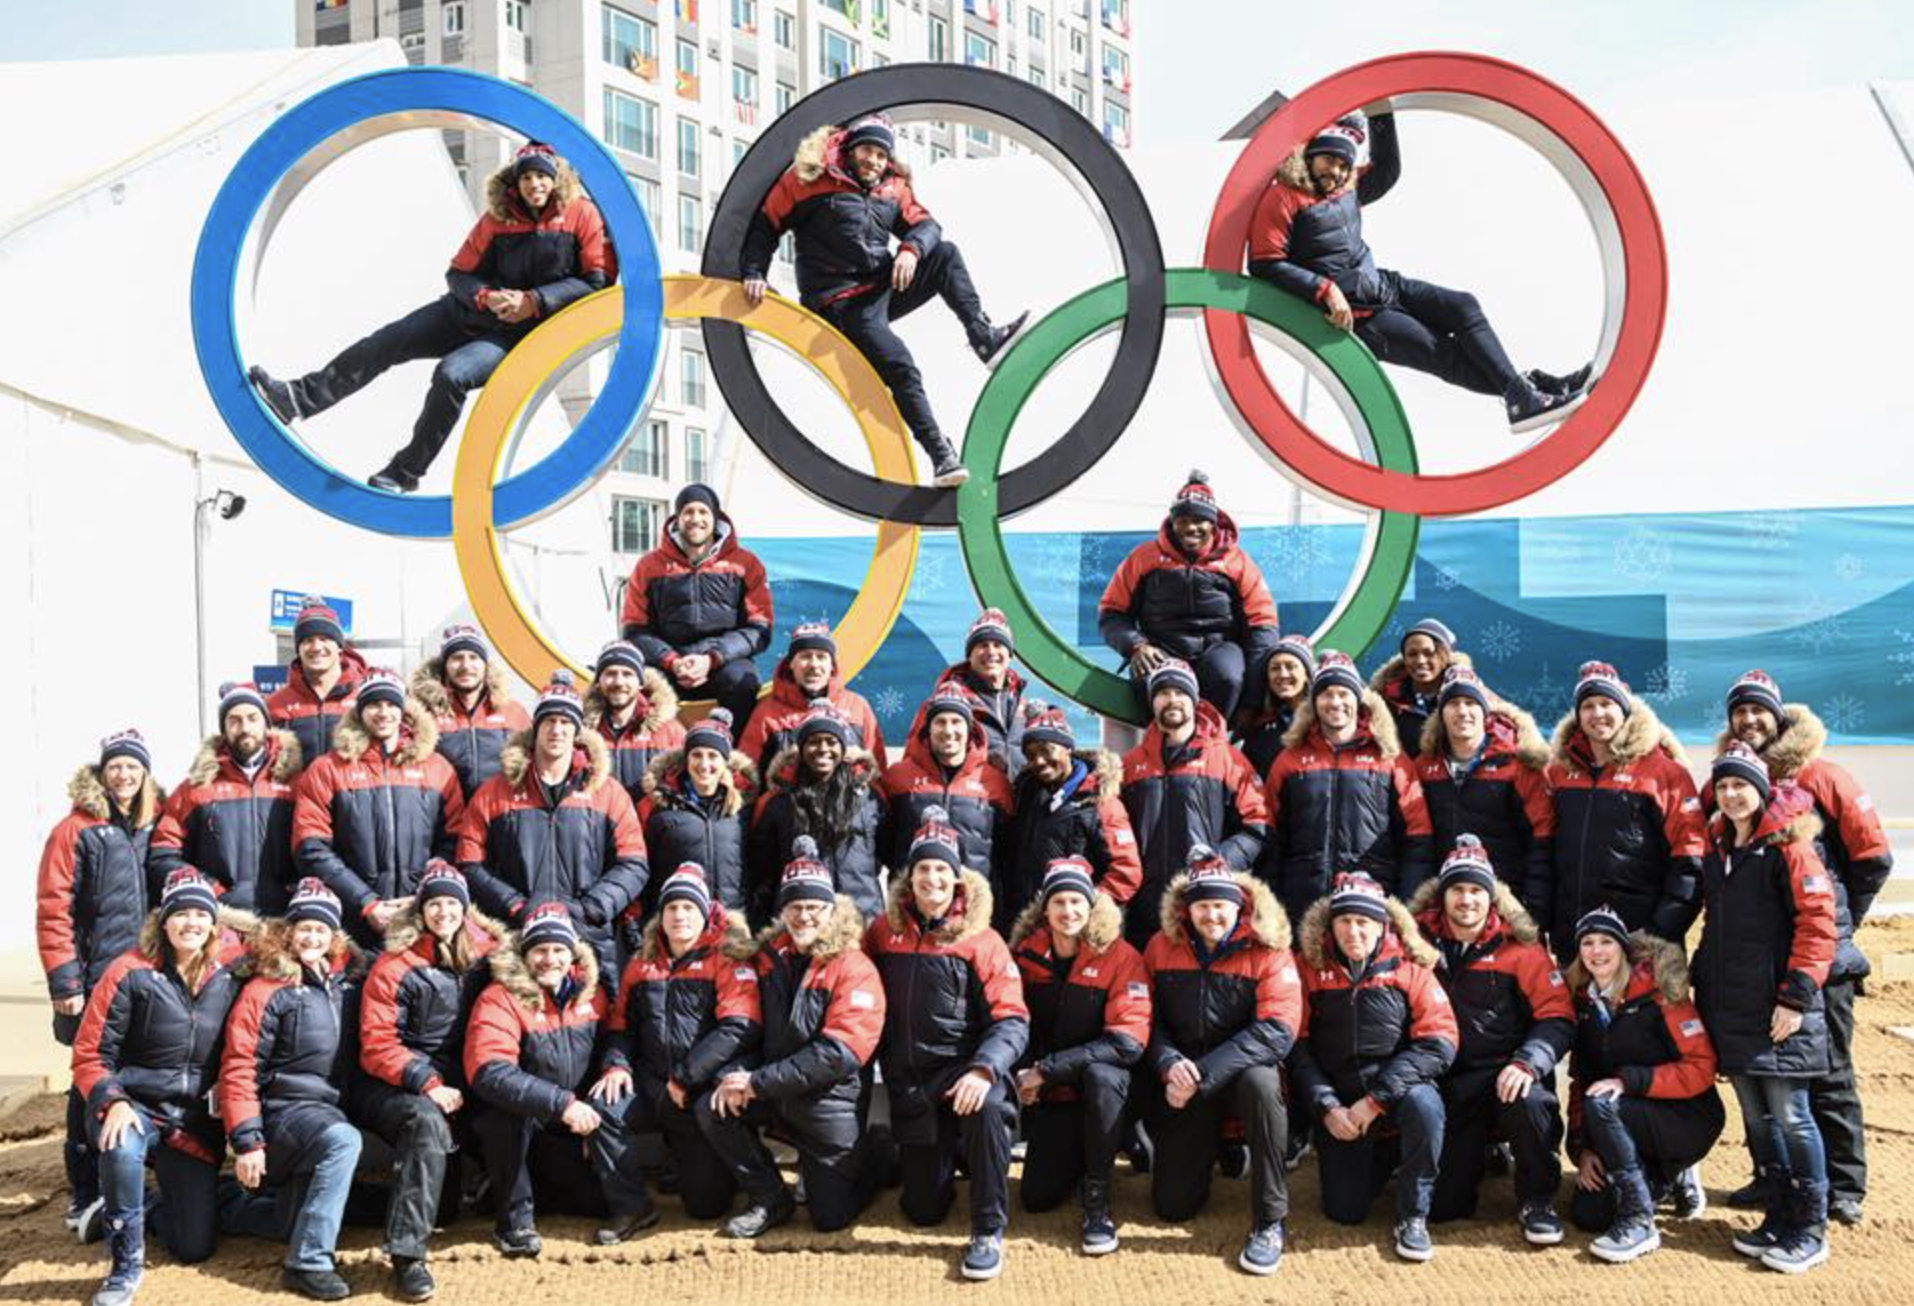 Team USA Bobsled/Skeleton at the 2018 Winter Olympics in PyeongChang, South Korea.